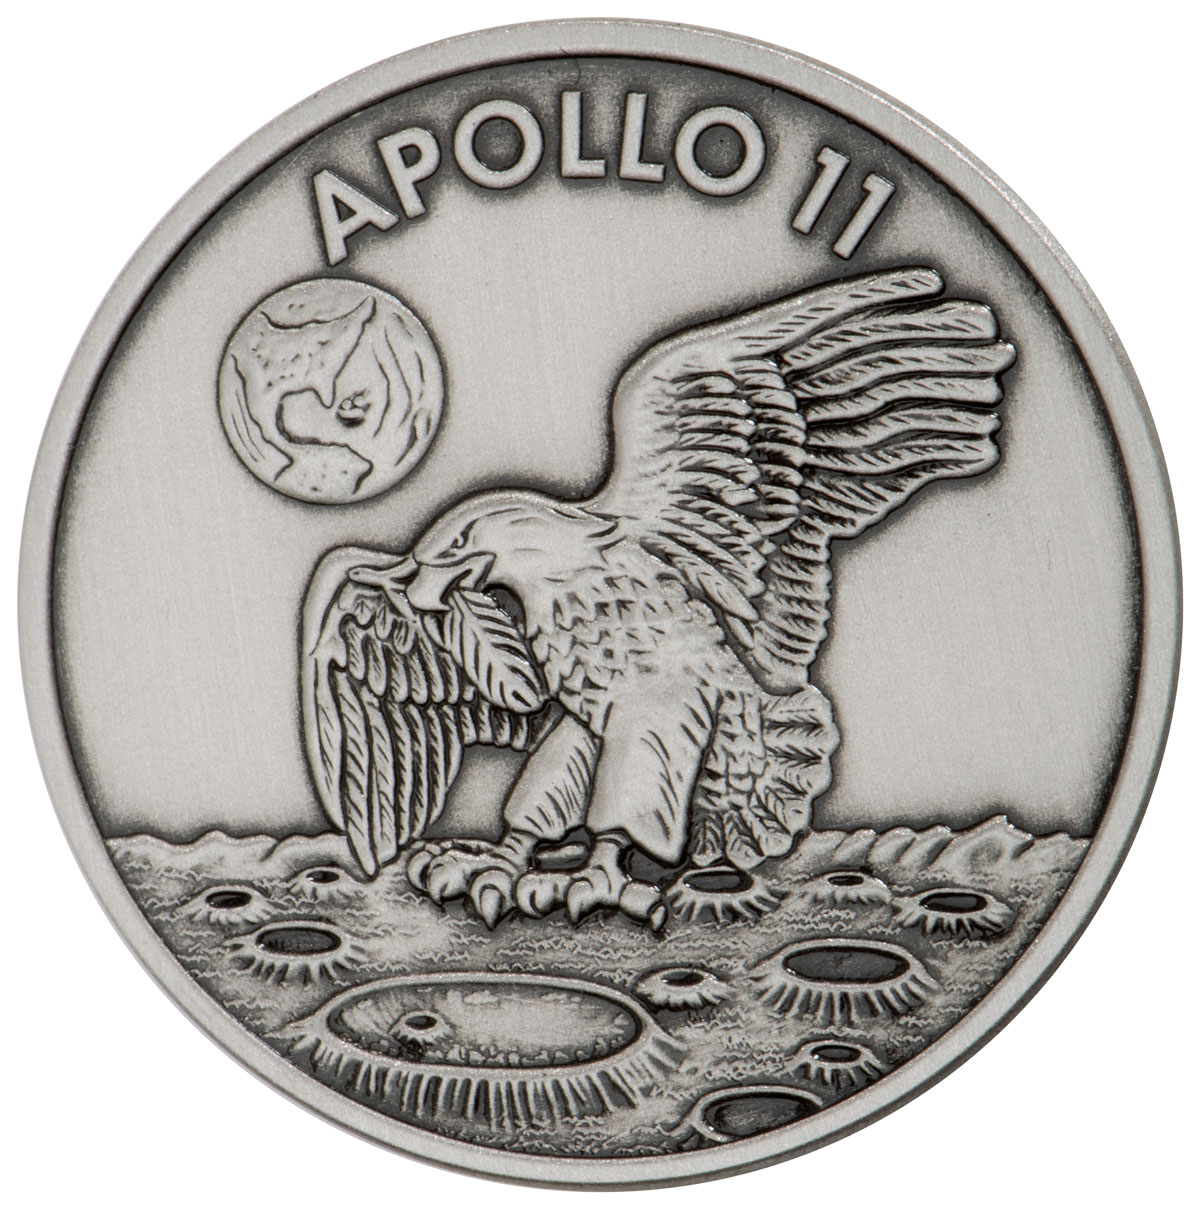 1969-2019 Apollo 11 50th Anniversary Robbins Medals 1 oz Silver with Space Flown Alloy Antiqued Medal